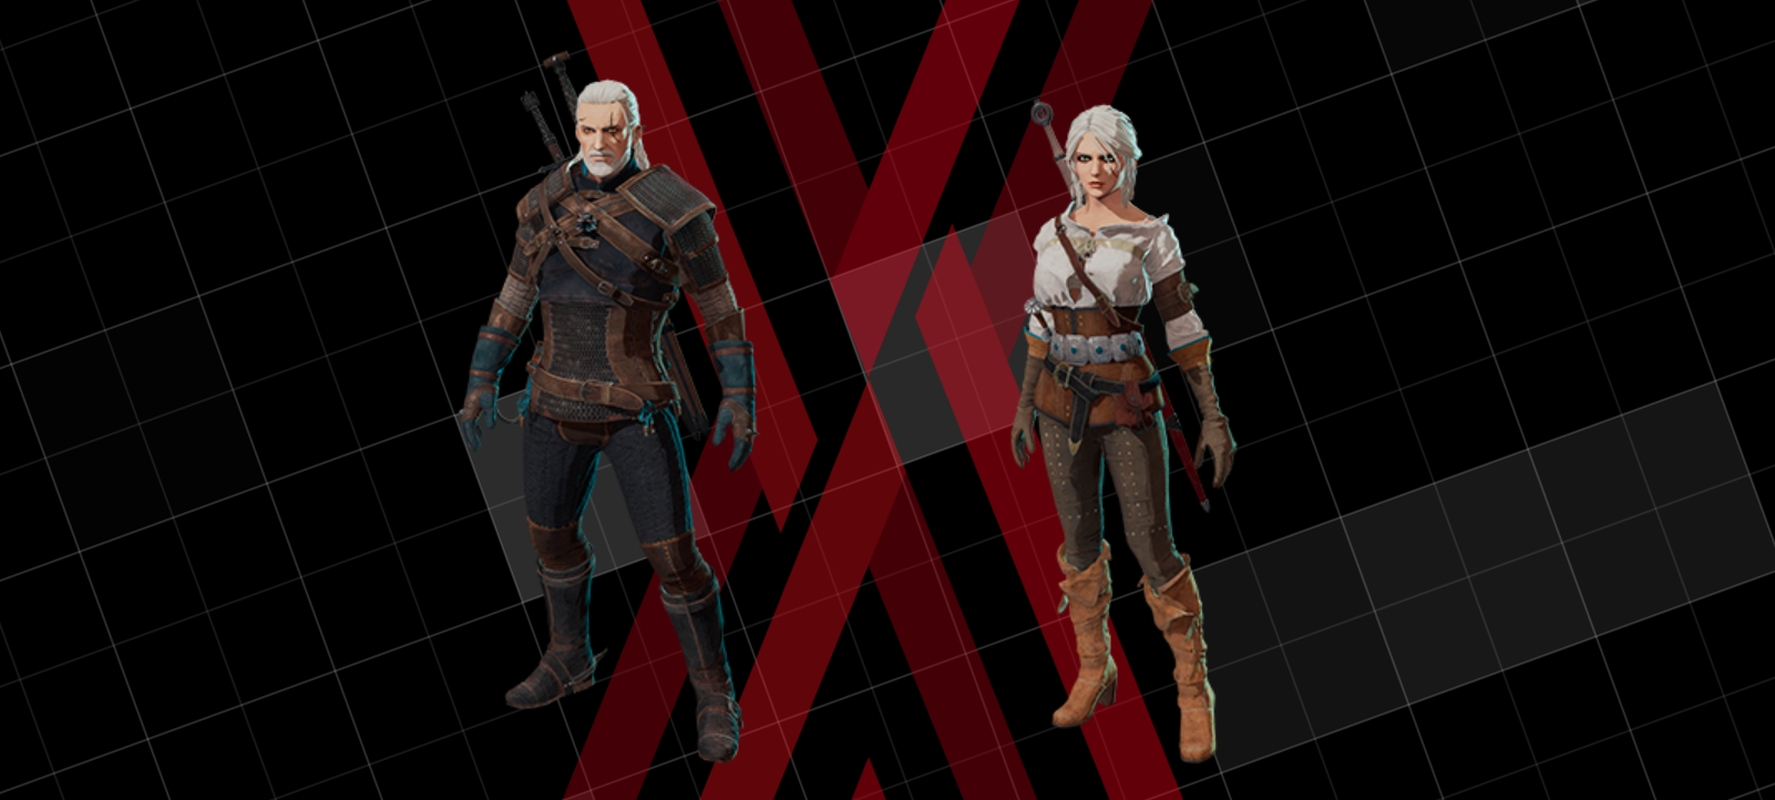 Daemon X Machina And The Witcher 3: Wild Hunt Free Collaboration DLC Announced